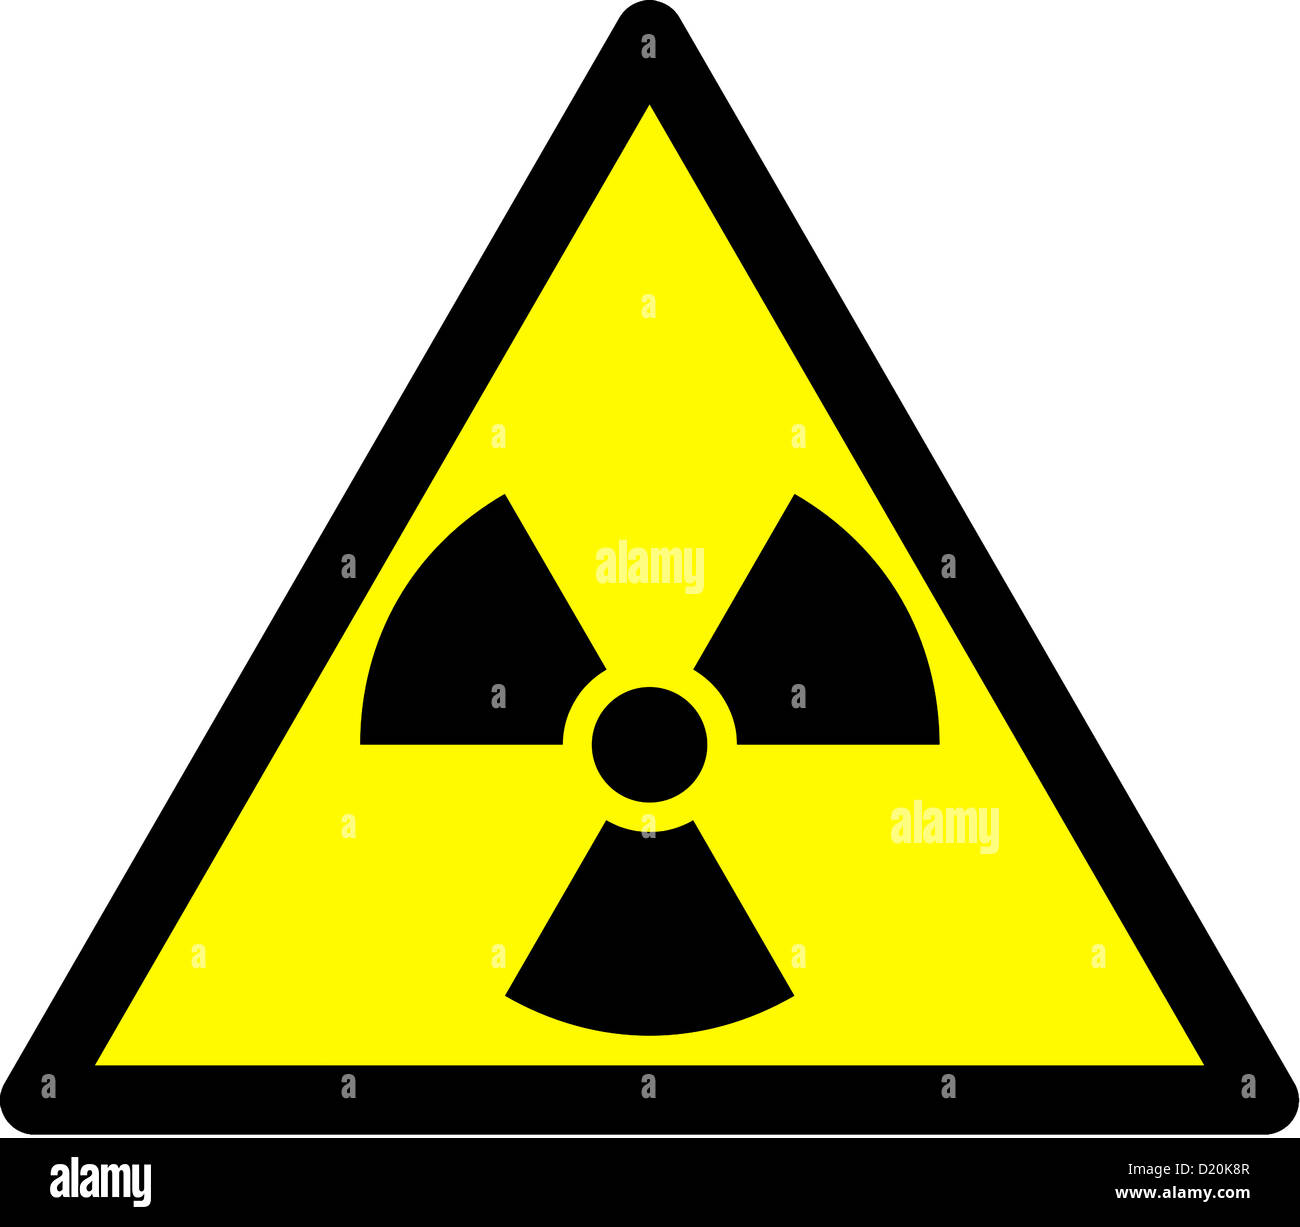 Warning sign in front of radioactivity, radioactive substances and ionising radiation. - Stock Image